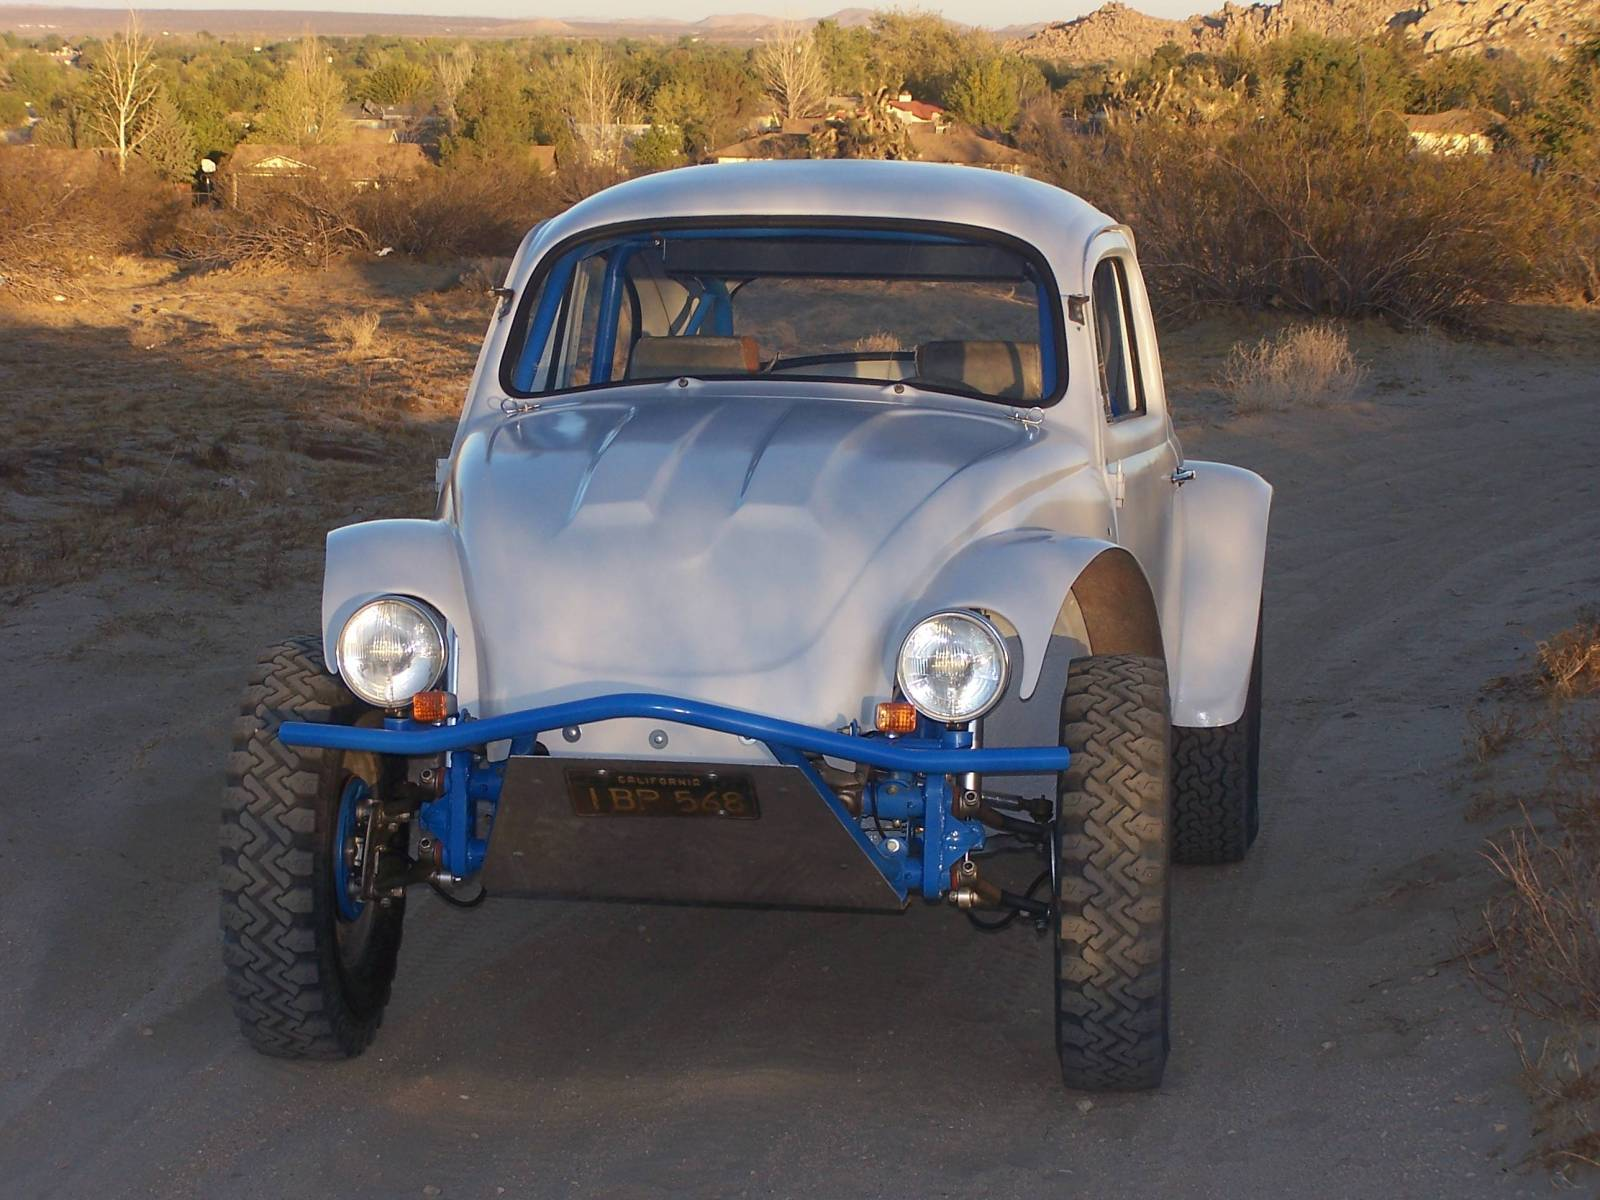 Hbb Off Road View Topic A 1967 Baja Bug Build Com Offroad Tail Light Wiring Help Click Image To Fullscreen